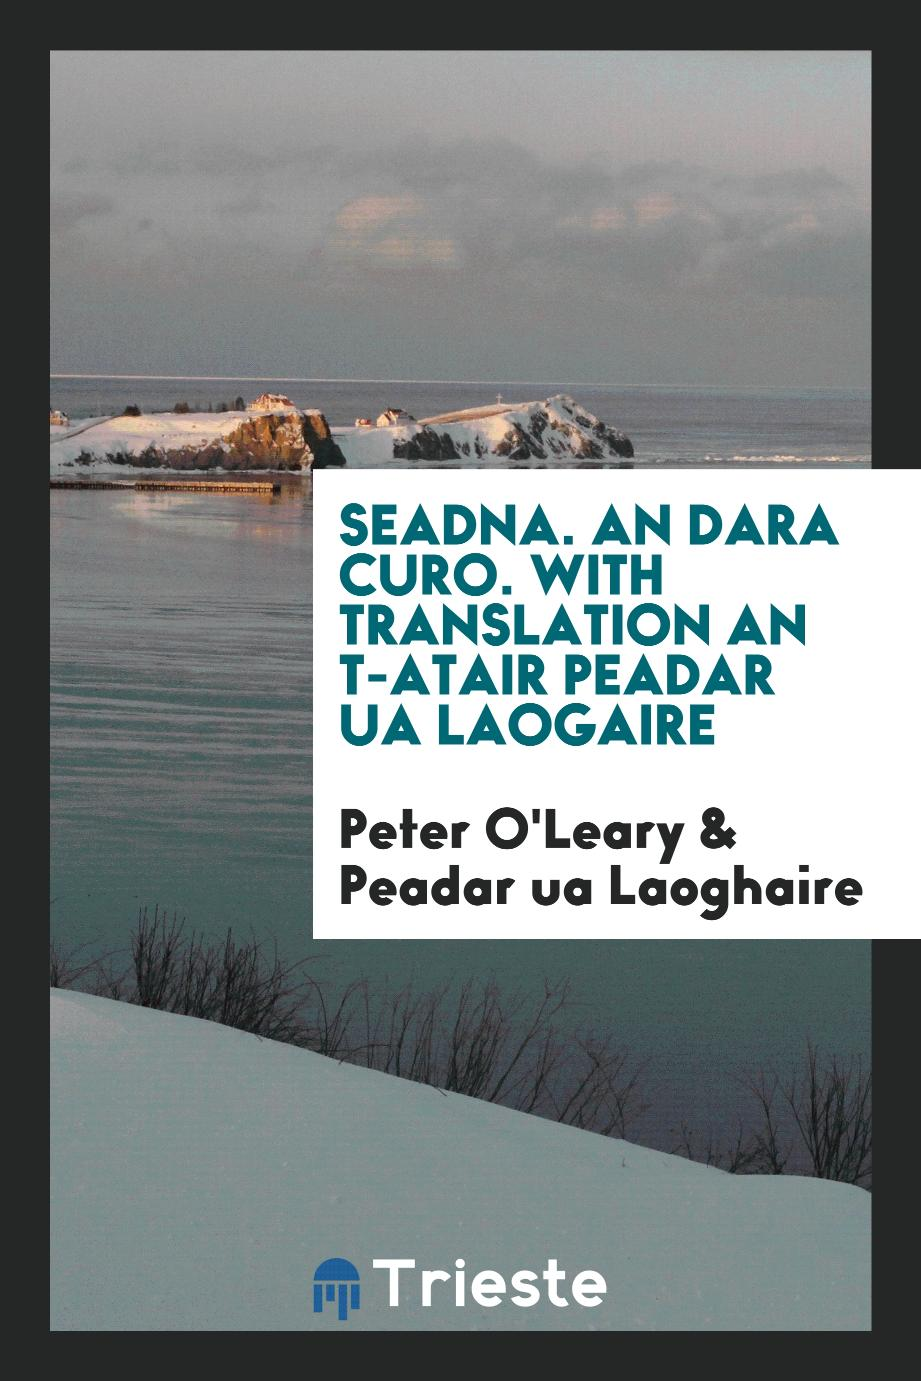 Seadna. An dara curo. With translation an t-Atair Peadar ua Laogaire